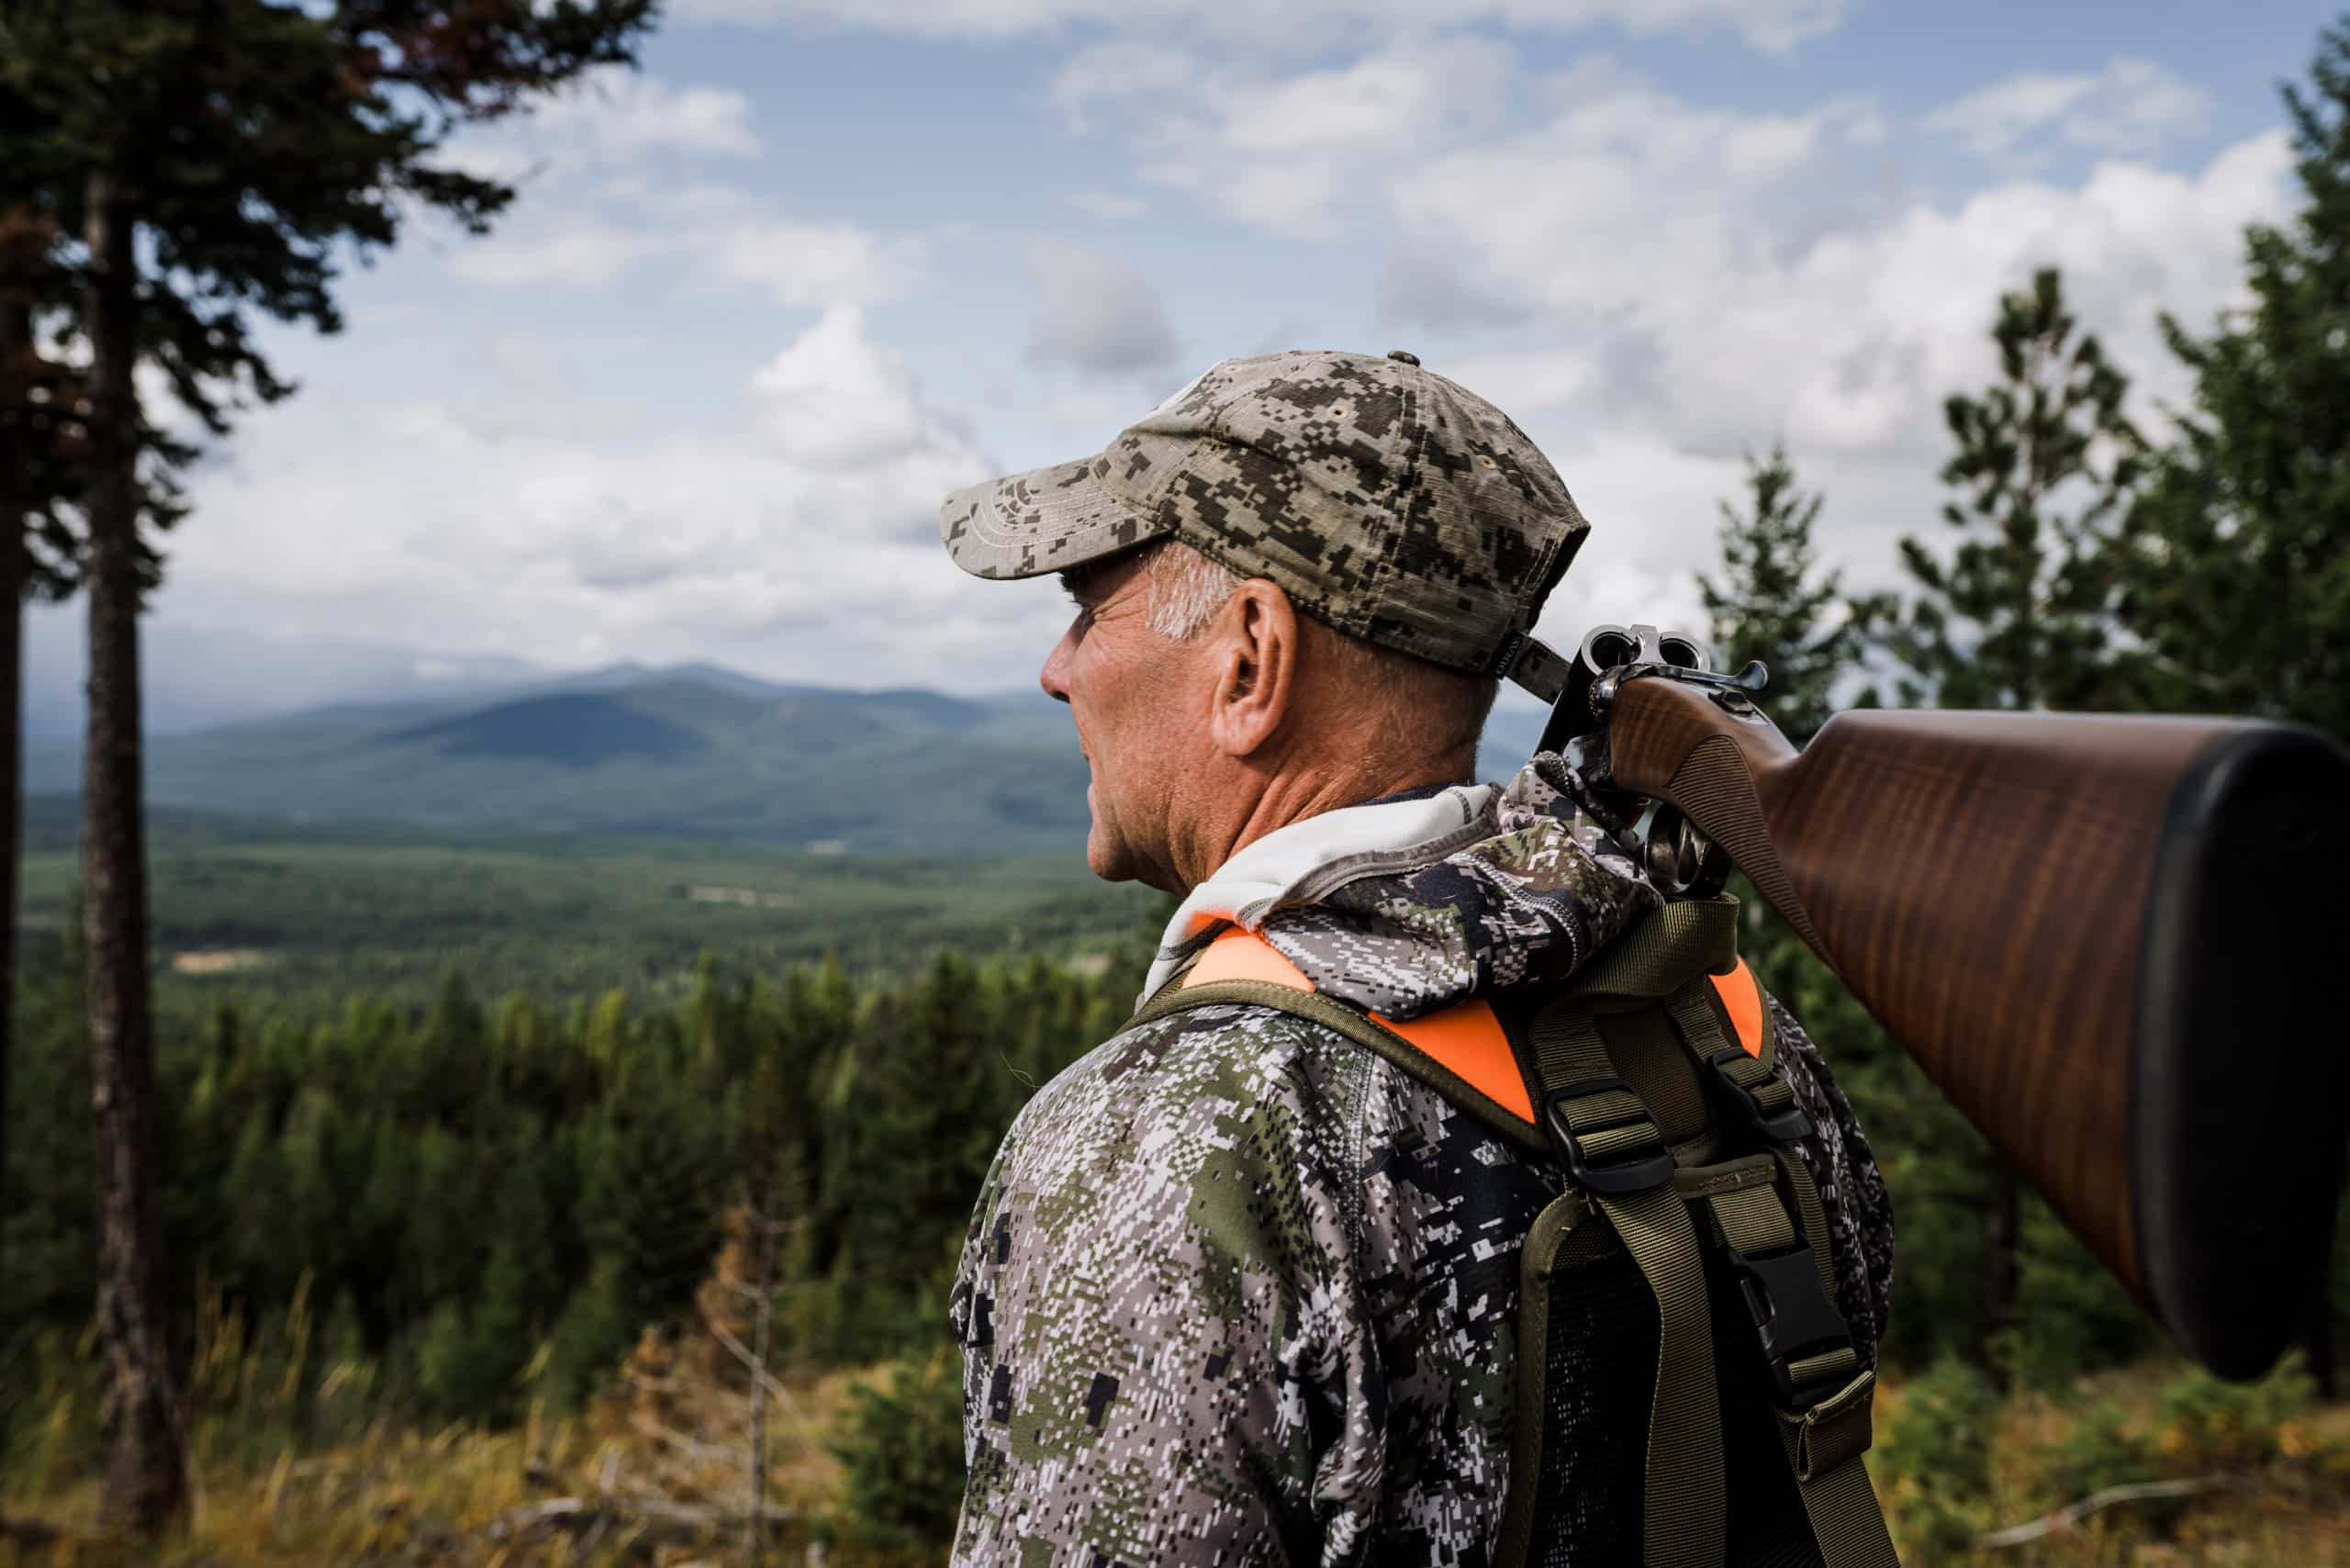 Montana outfitter Tim Linehan holds a shotgun and looks out over the valley.